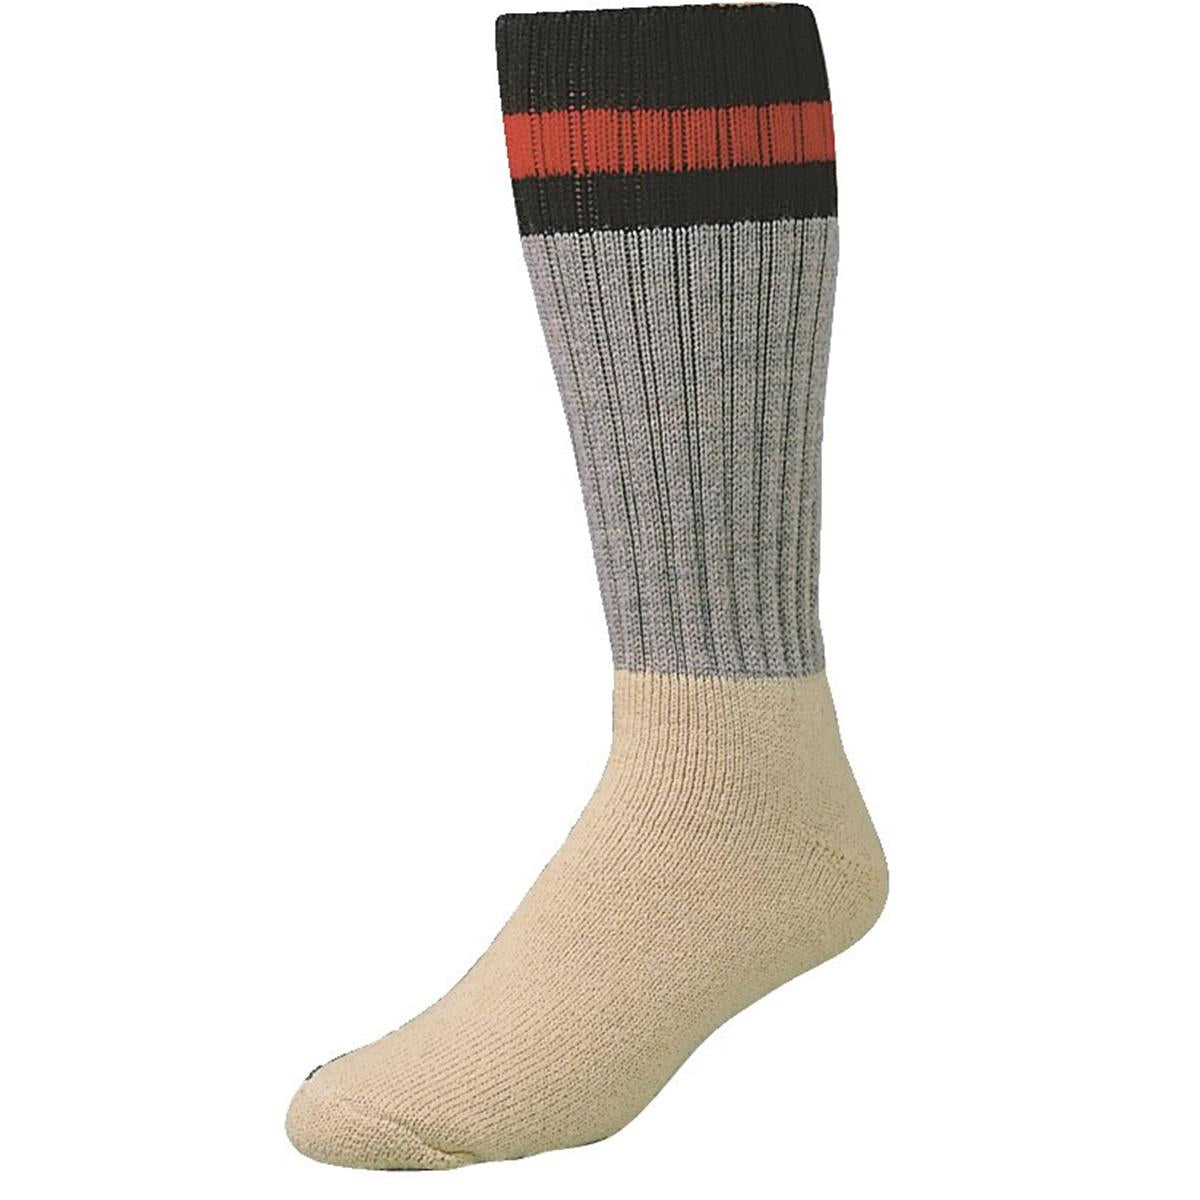 FOXRIVER Worsted Wool Boot Socks, 1 Pair